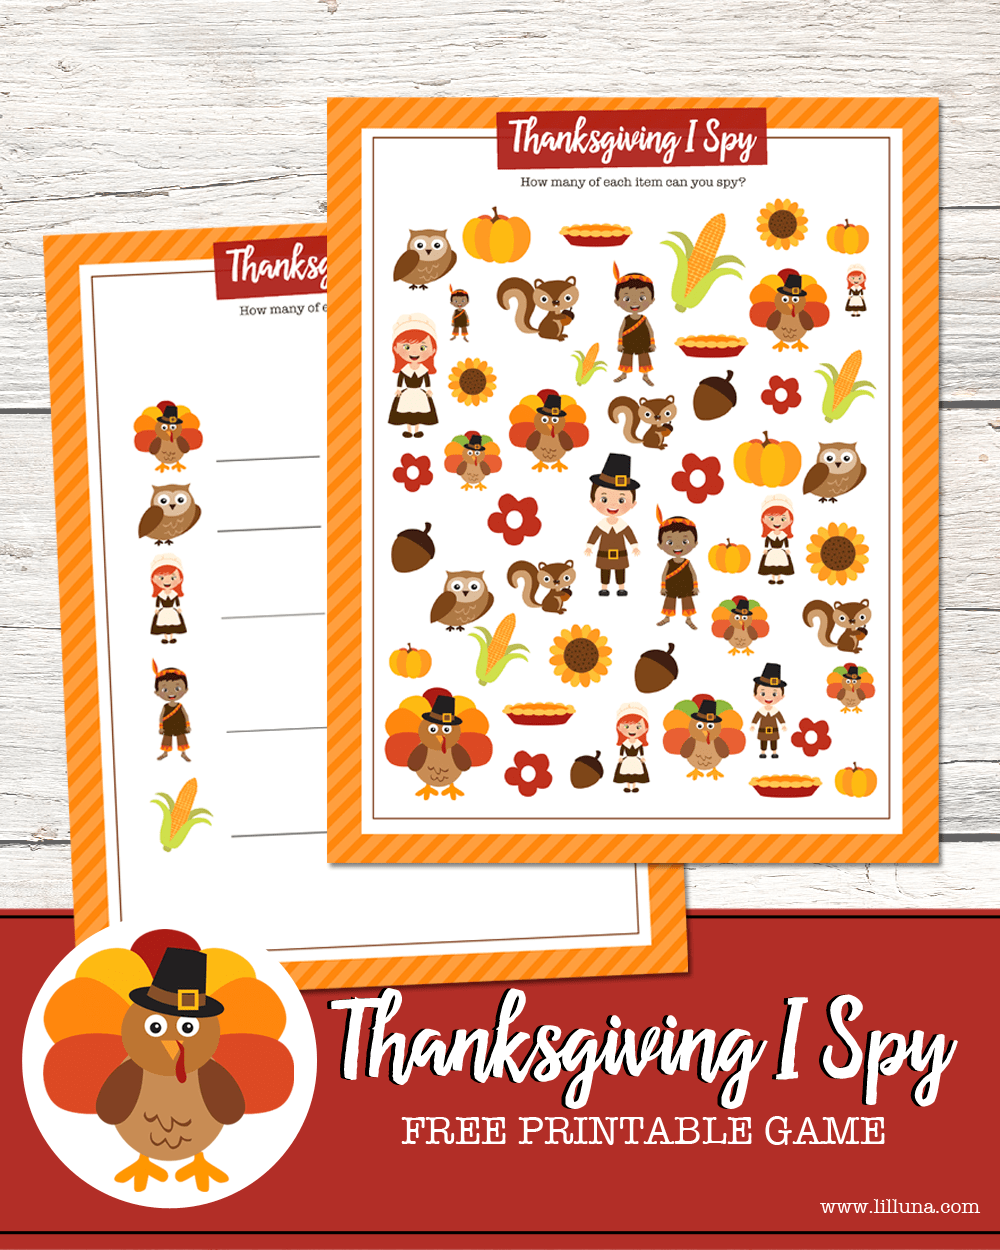 FREE Printable Thanksgiving I Spy printable - such a fun activity for the kids to do on Thanksgiving!